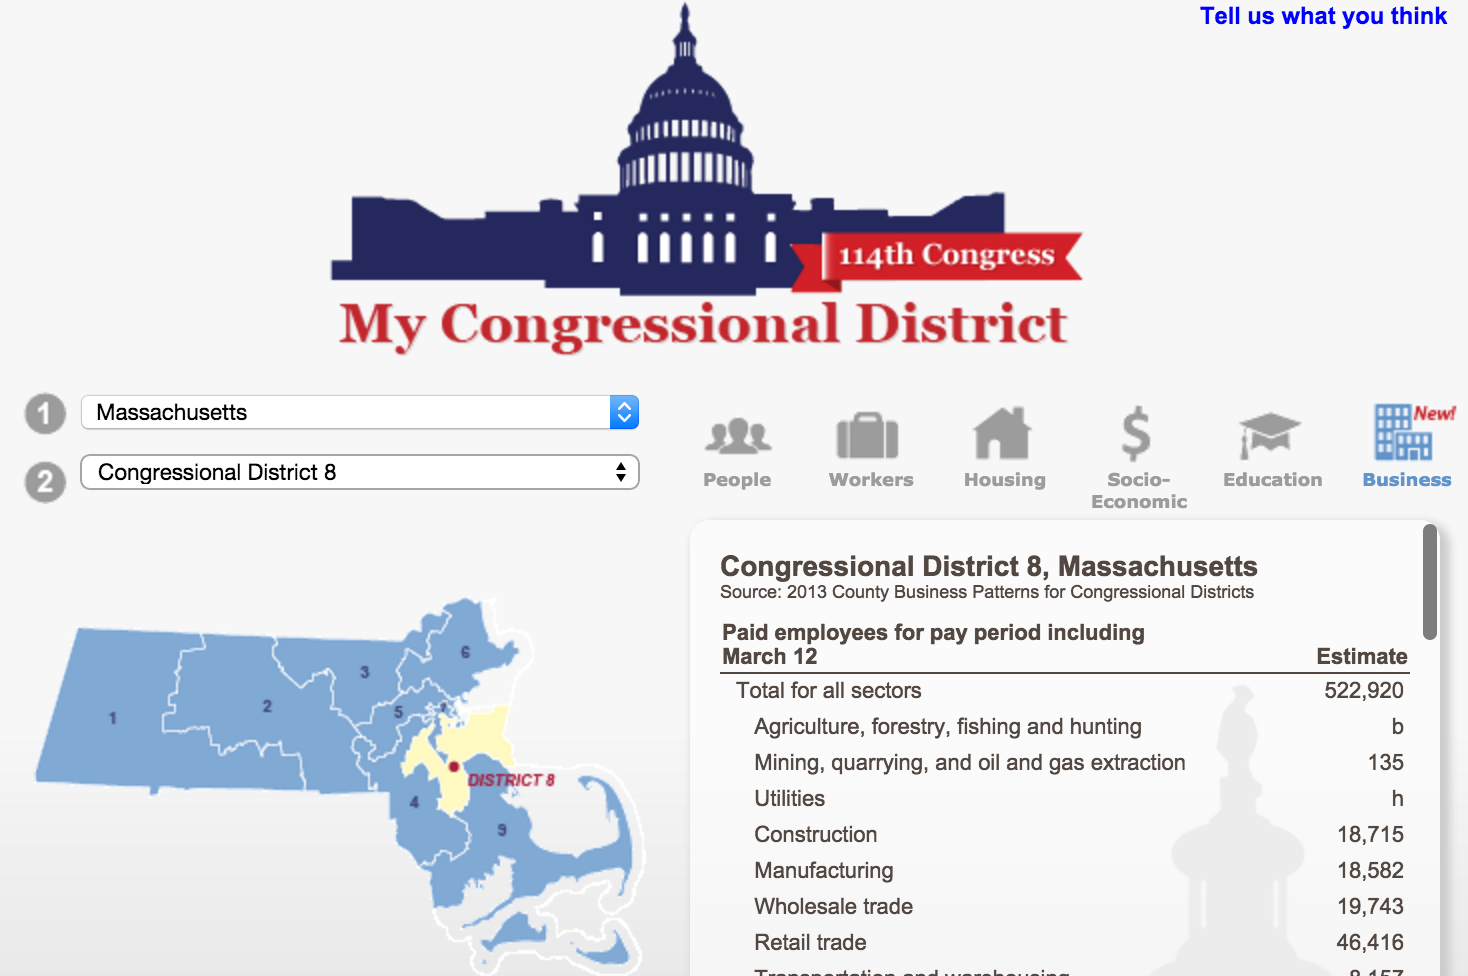 map of congressional district 8 Massachusetts